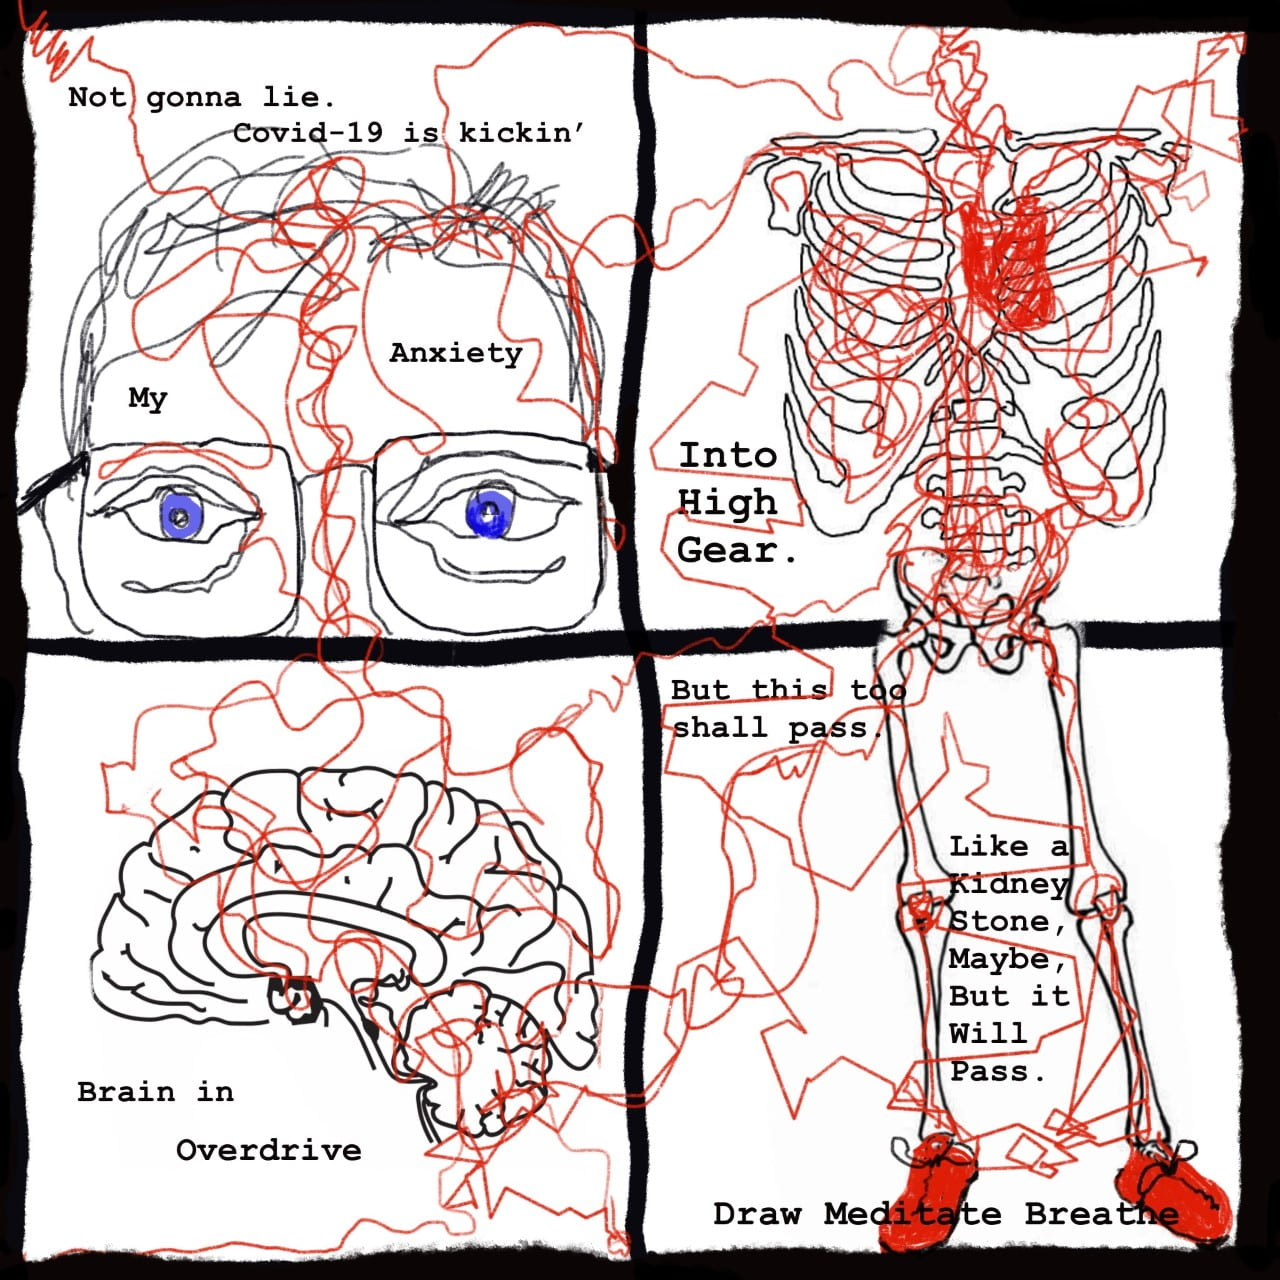 four-panel illustration of man's face, brain, skeleton with red squiggly lines